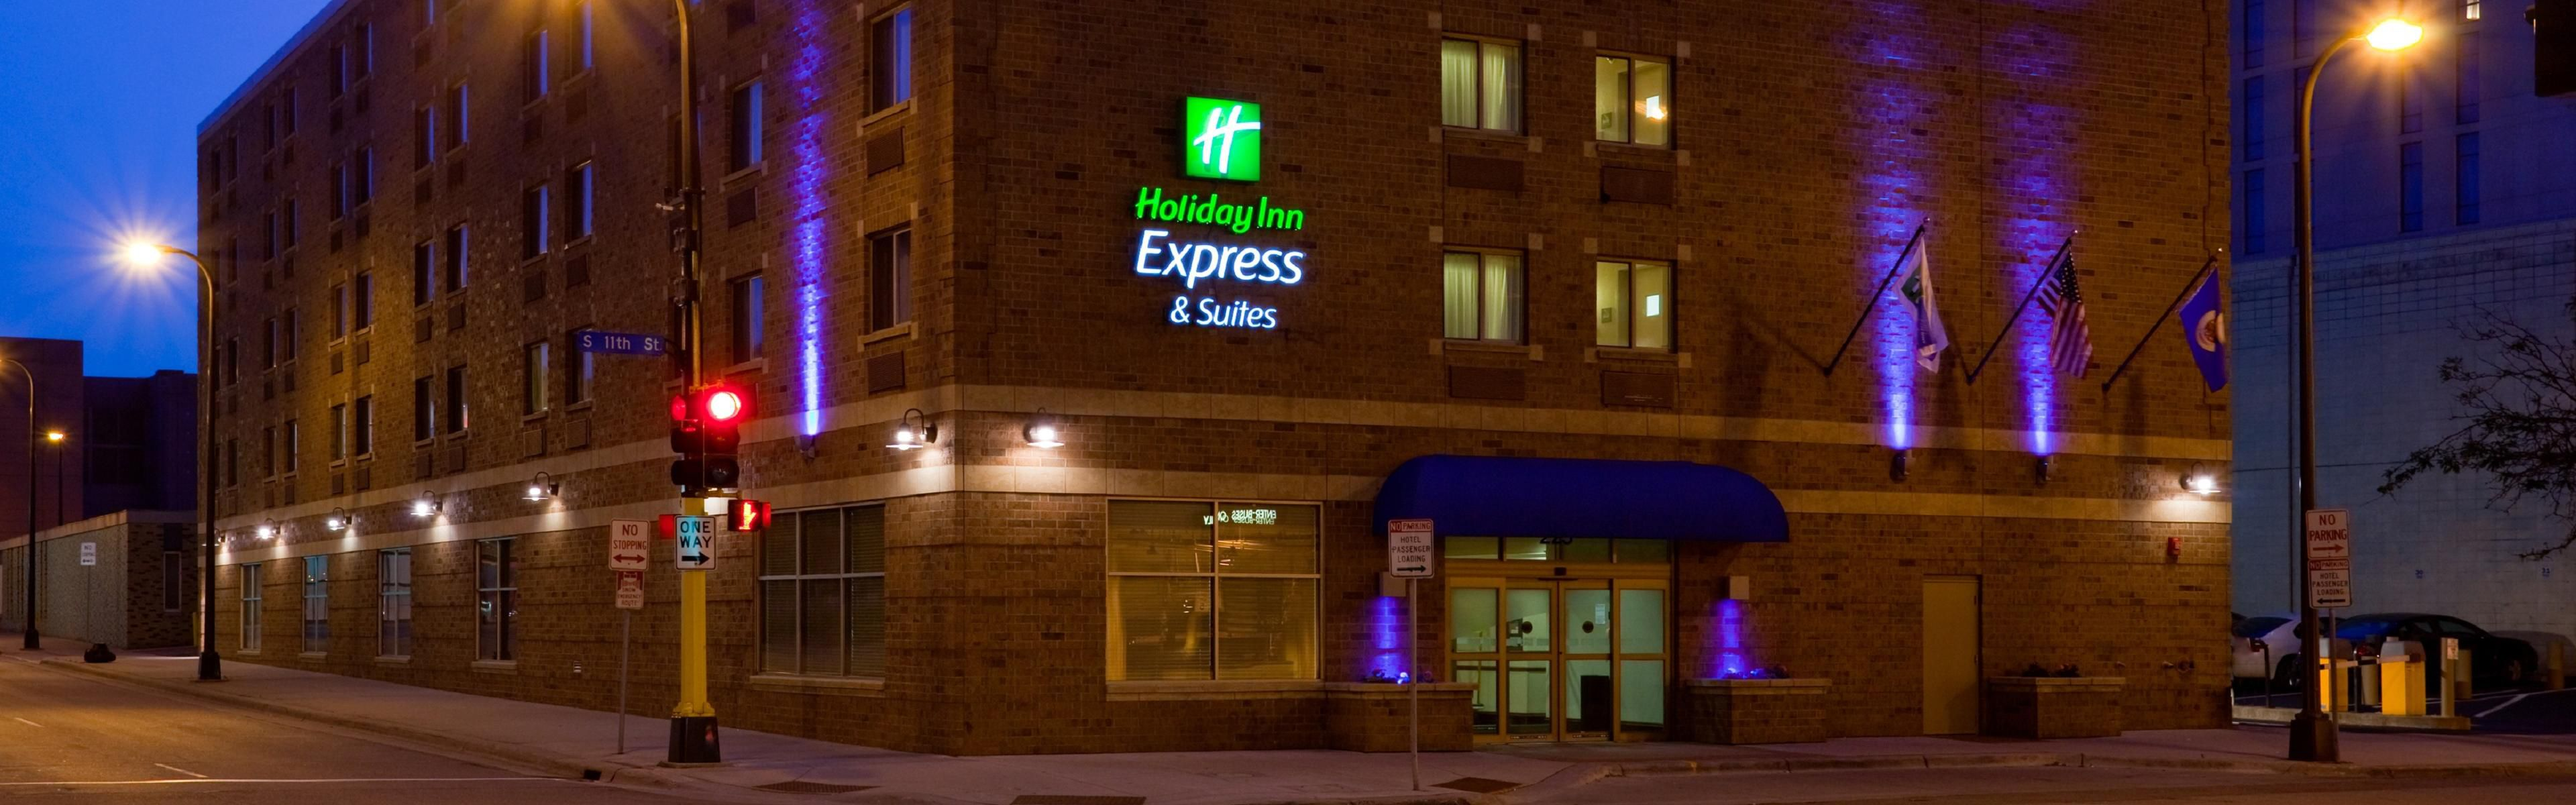 Holiday Inn Express & Suites Minneapolis-Dwtn (Conv Ctr) image 0